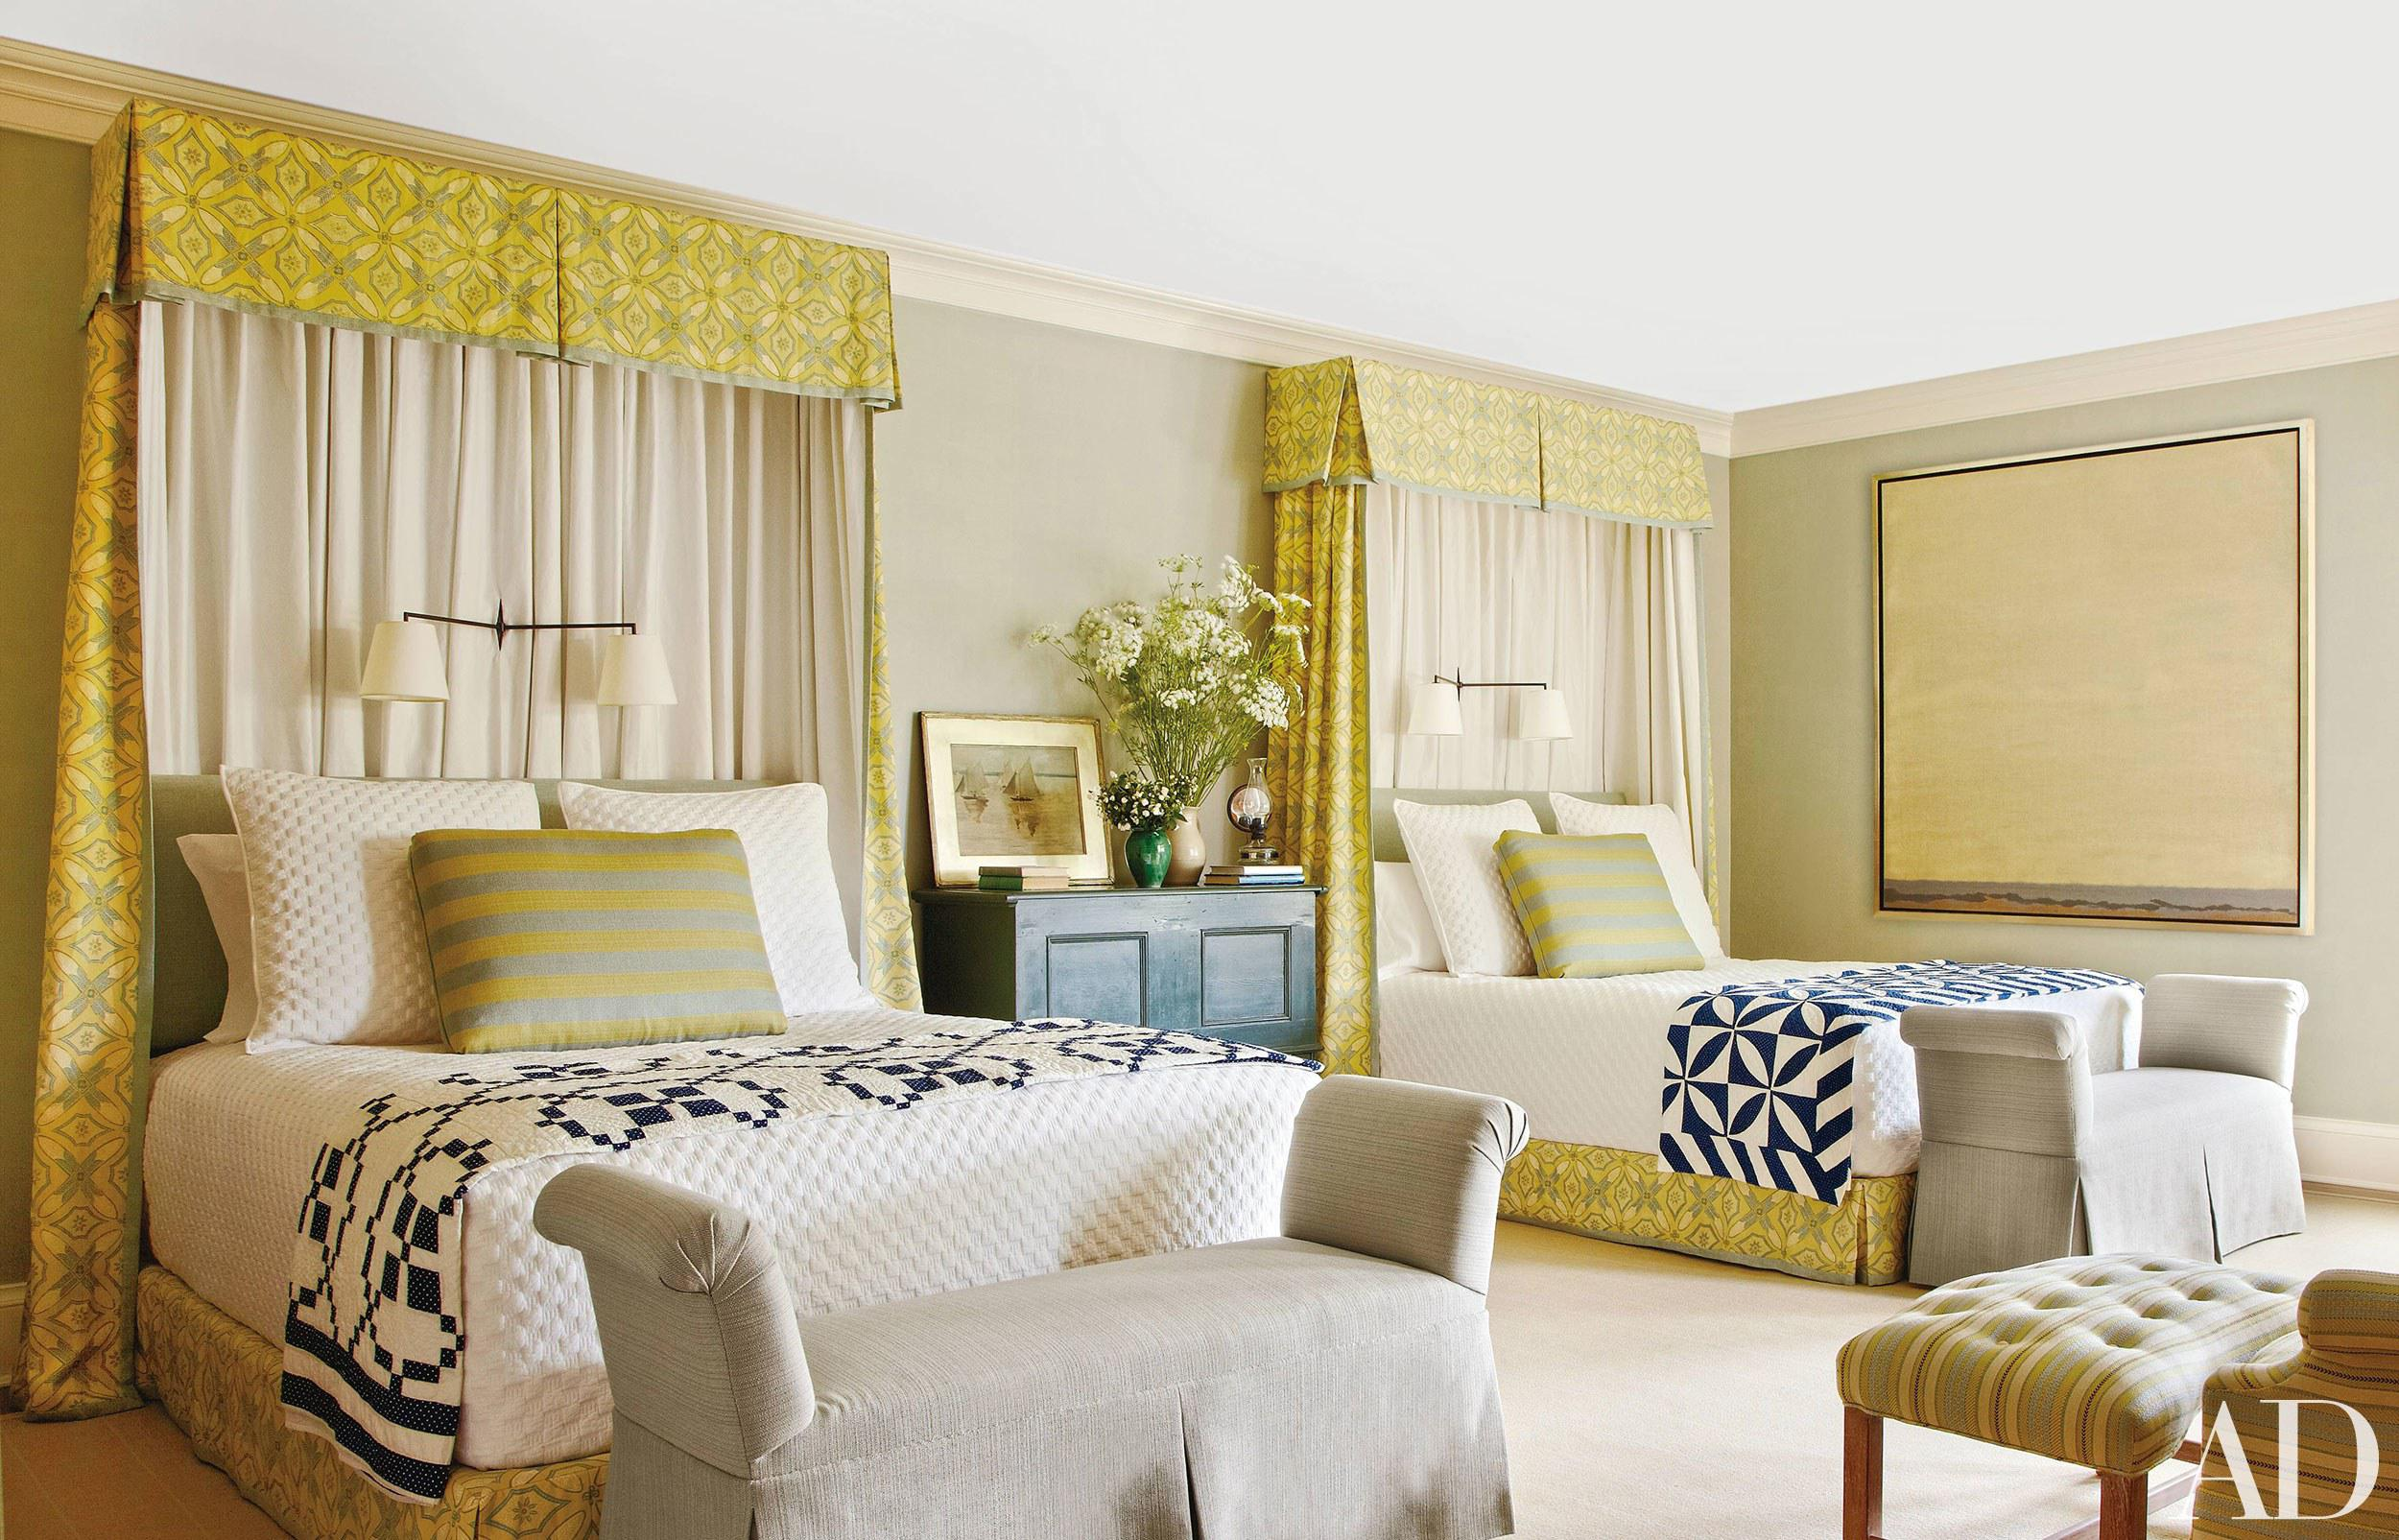 Image of: Appealing Twin Bed Guest Room Ideas